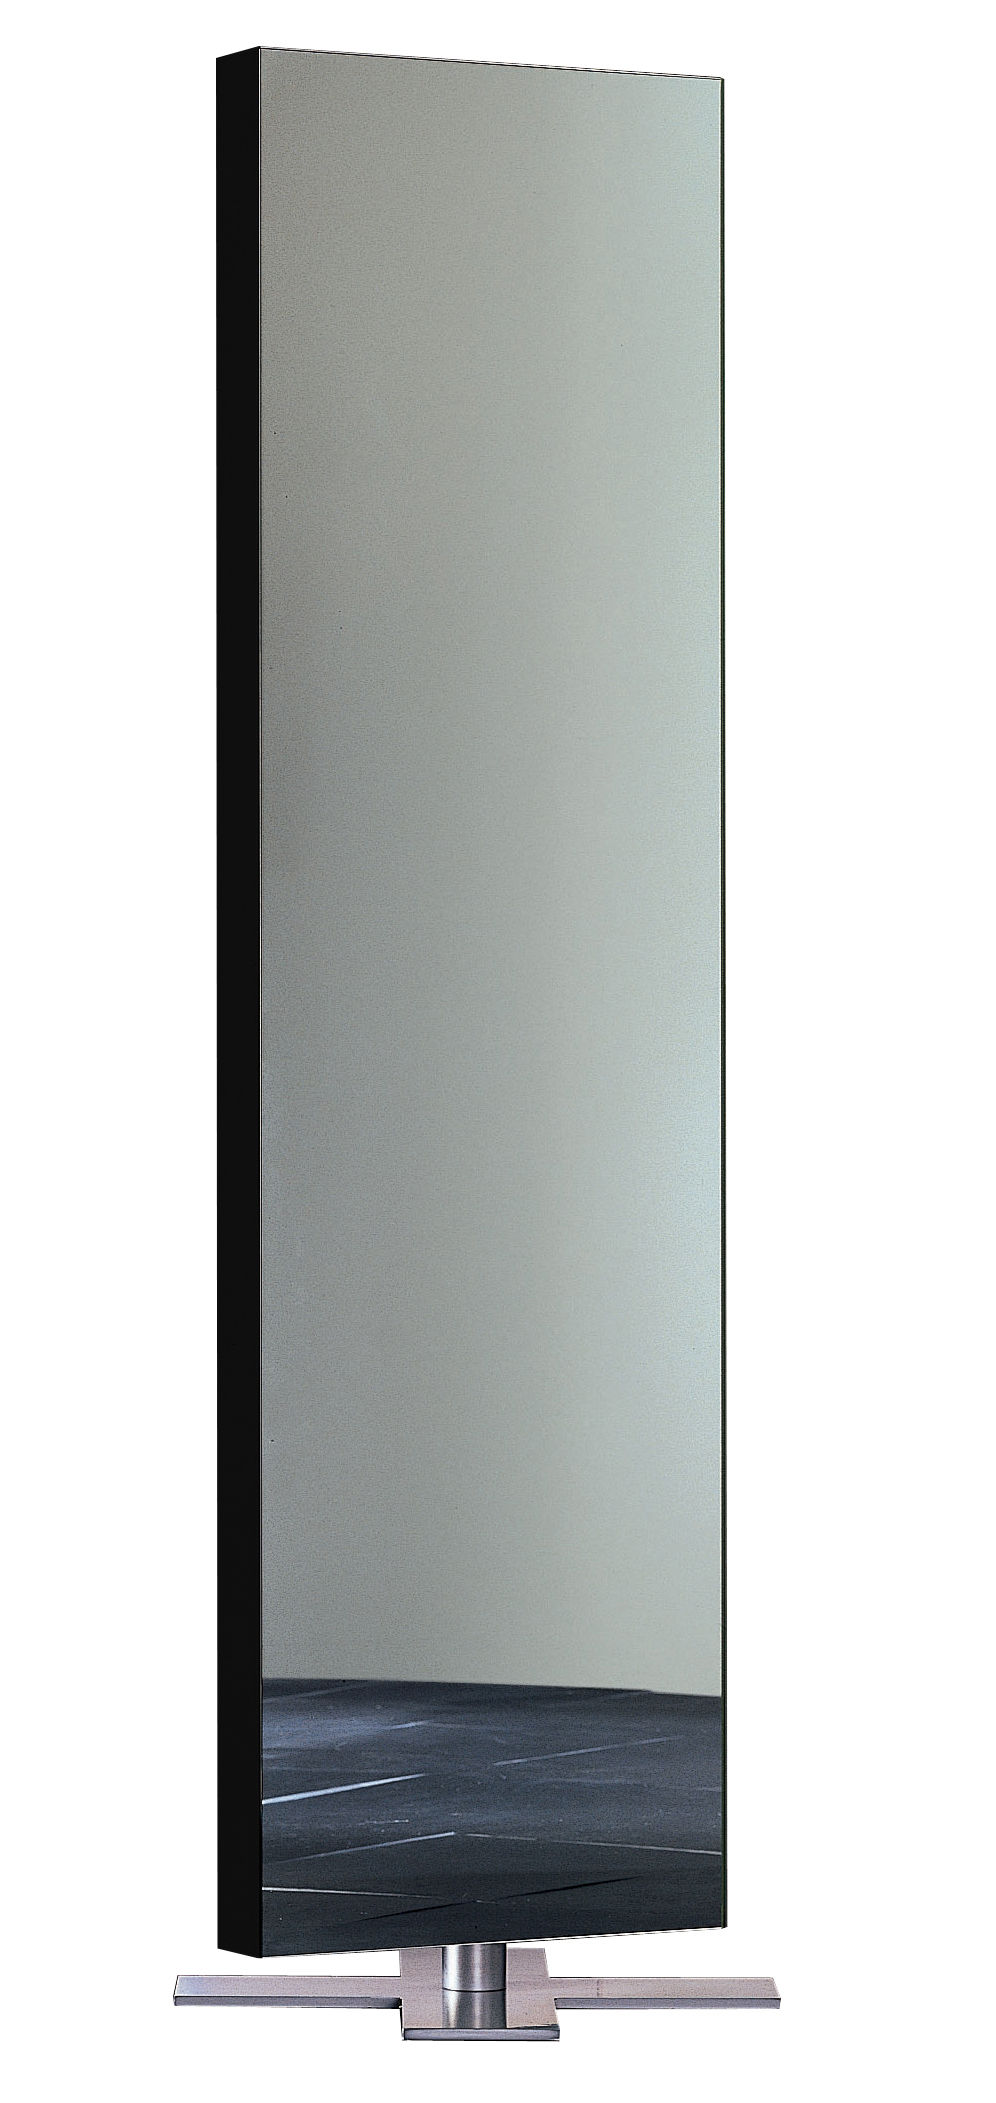 Furniture - Mirrors - Giano Mirror with base - Floor version by Glas Italia - Lacquered white - Glass, Satin metal